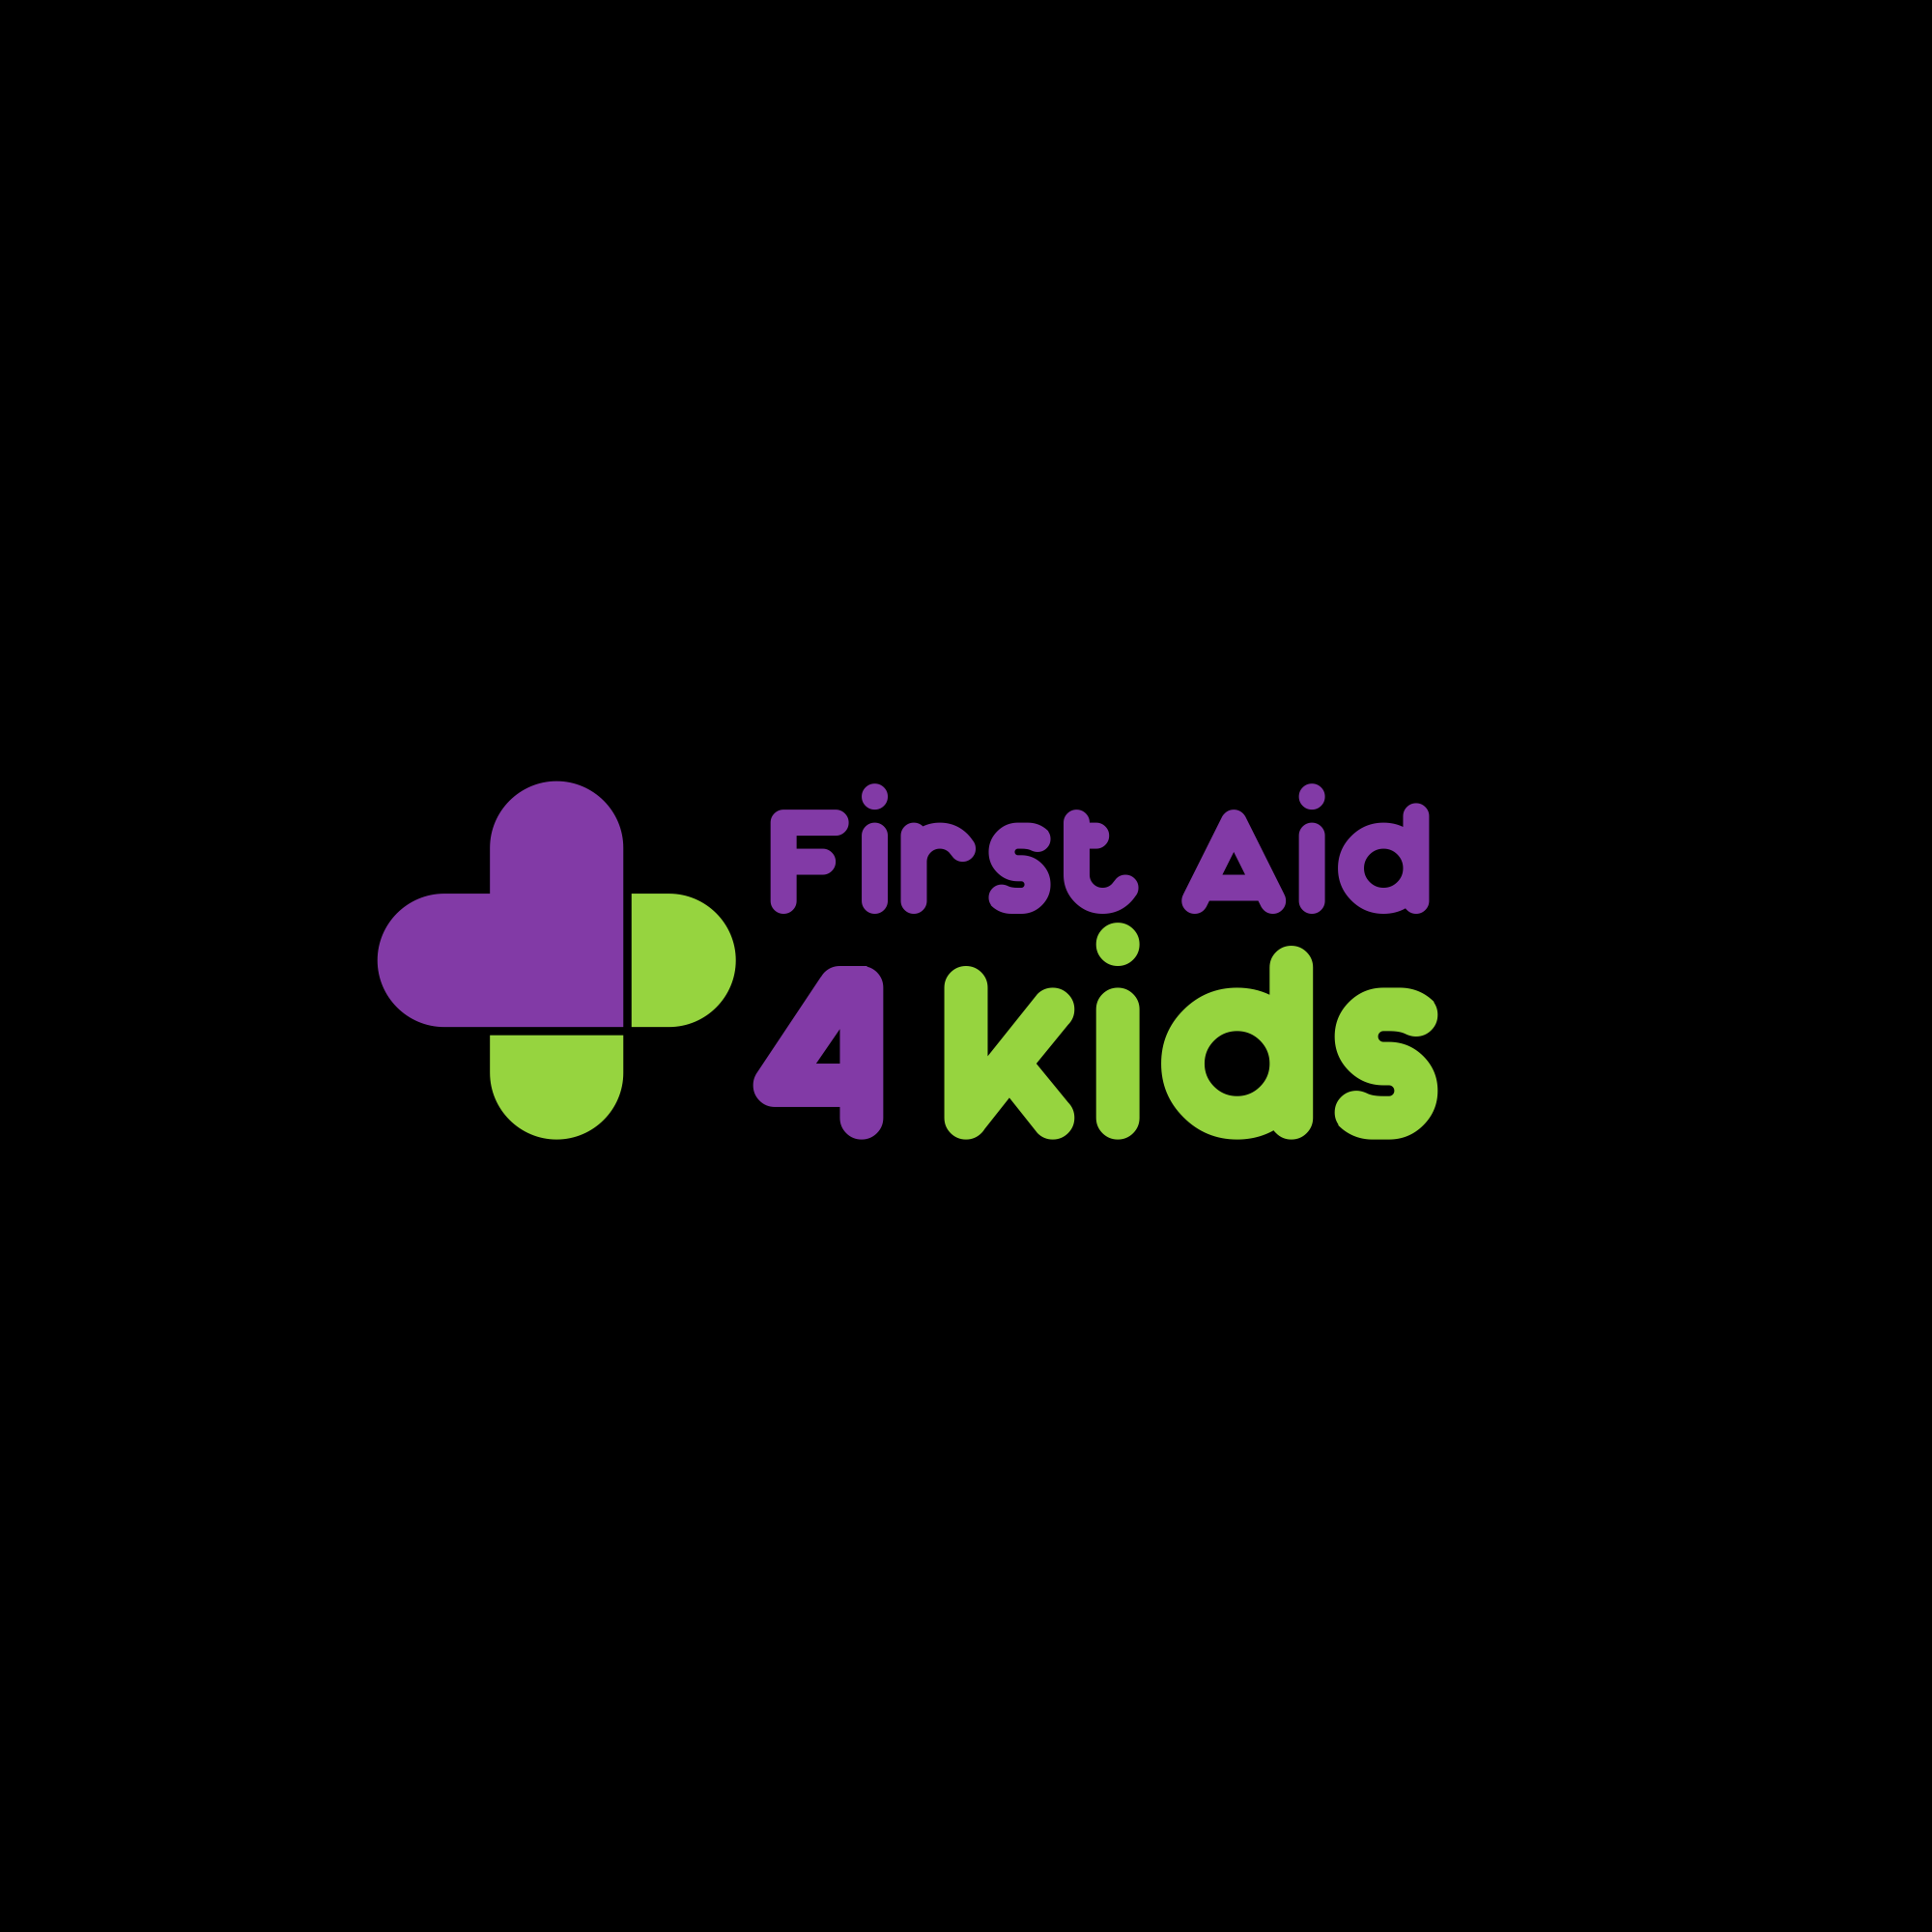 Children's first aid company needs a new logo